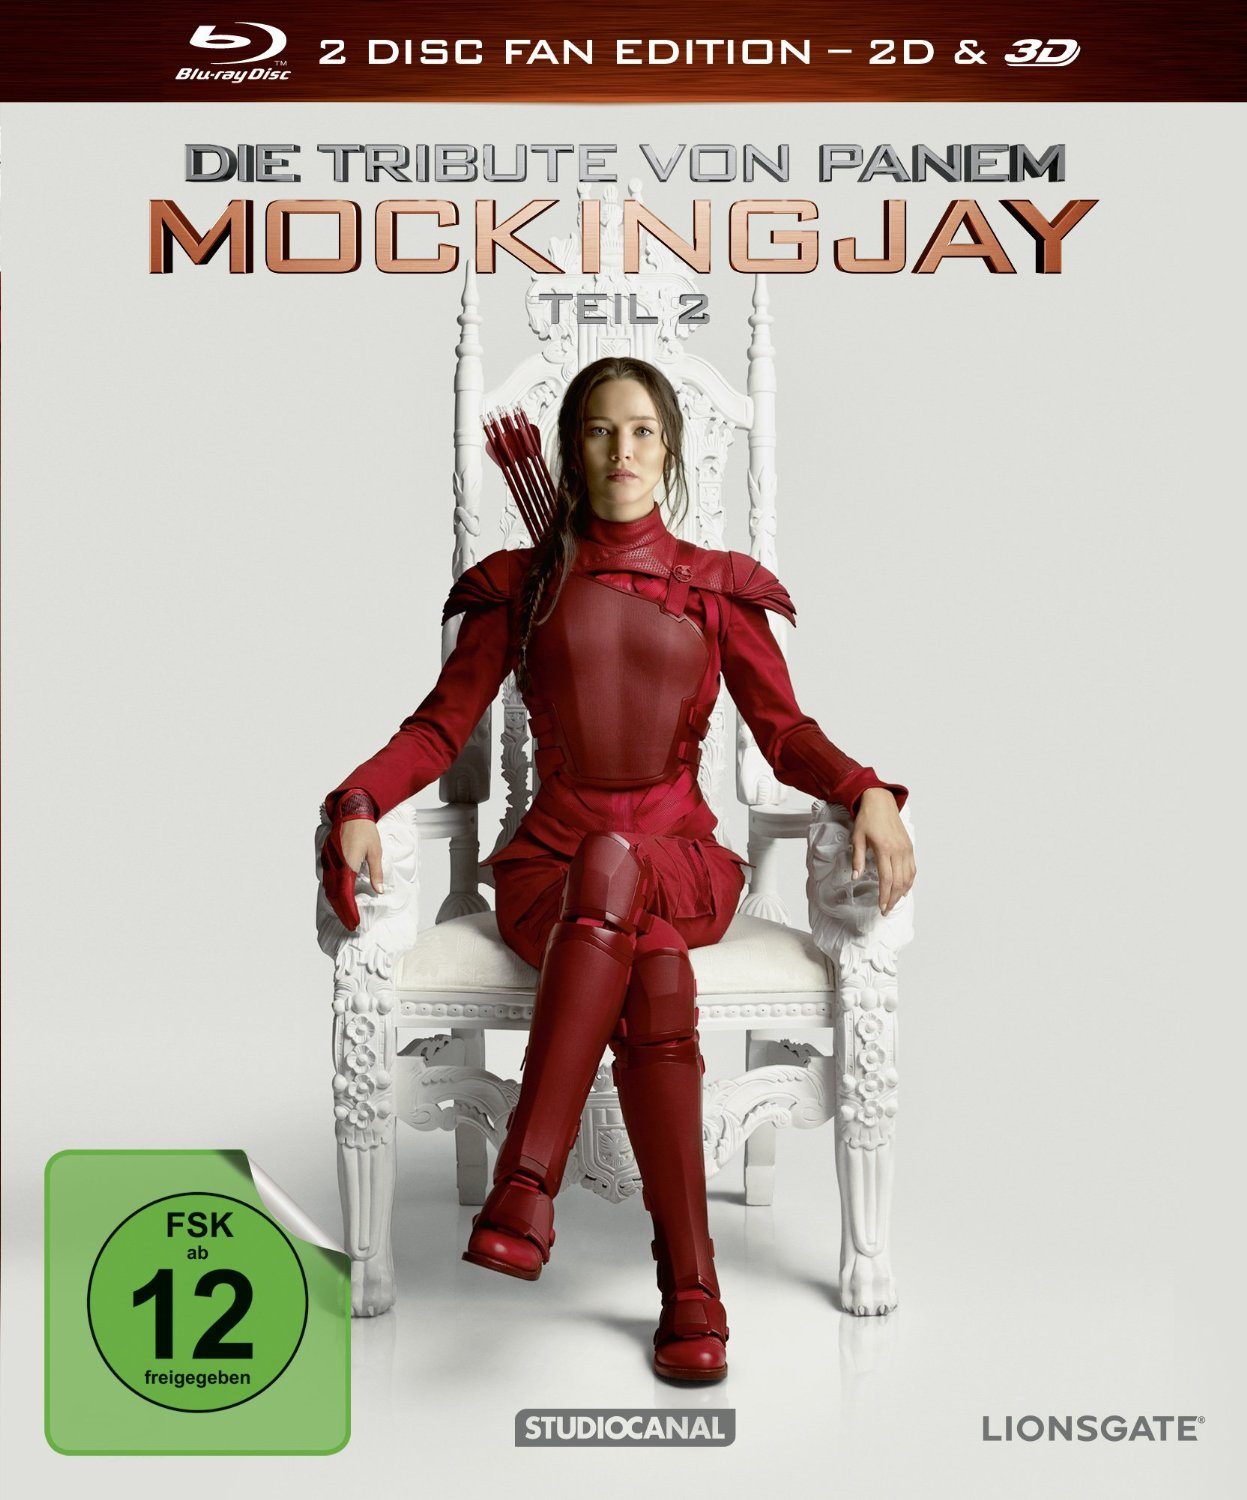 Die Tribute von Panem - Mockingjay: Teil 2 3D [Fan Edition, 2 Discs]